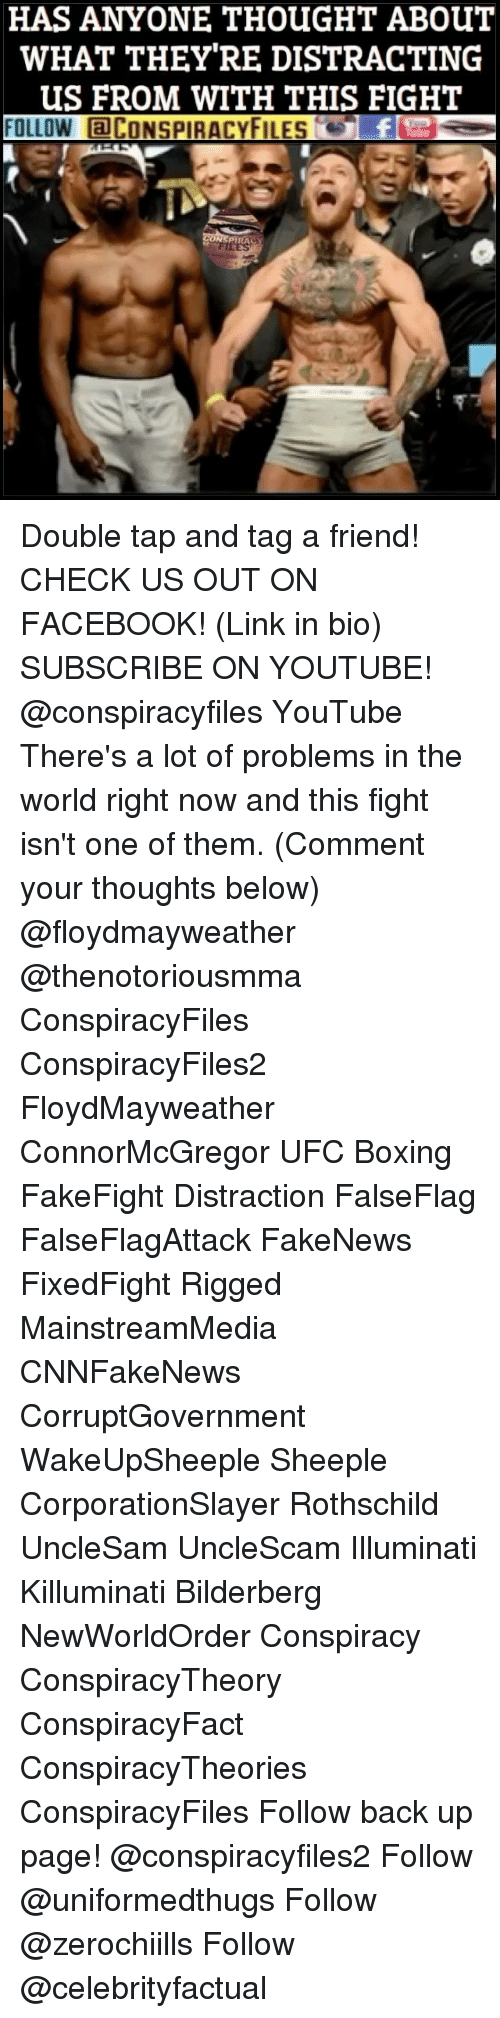 Boxing, Facebook, and Illuminati: HAS ANYONE THOUGHT ABOUT  WHAT THEY RE DISTRACTING  US FROM WITH THIS FIGHT  FOLLOW aCONSPIRACYFILES  PTRA Double tap and tag a friend! CHECK US OUT ON FACEBOOK! (Link in bio) SUBSCRIBE ON YOUTUBE! @conspiracyfiles YouTube There's a lot of problems in the world right now and this fight isn't one of them. (Comment your thoughts below) @floydmayweather @thenotoriousmma ConspiracyFiles ConspiracyFiles2 FloydMayweather ConnorMcGregor UFC Boxing FakeFight Distraction FalseFlag FalseFlagAttack FakeNews FixedFight Rigged MainstreamMedia CNNFakeNews CorruptGovernment WakeUpSheeple Sheeple CorporationSlayer Rothschild UncleSam UncleScam Illuminati Killuminati Bilderberg NewWorldOrder Conspiracy ConspiracyTheory ConspiracyFact ConspiracyTheories ConspiracyFiles Follow back up page! @conspiracyfiles2 Follow @uniformedthugs Follow @zerochiills Follow @celebrityfactual